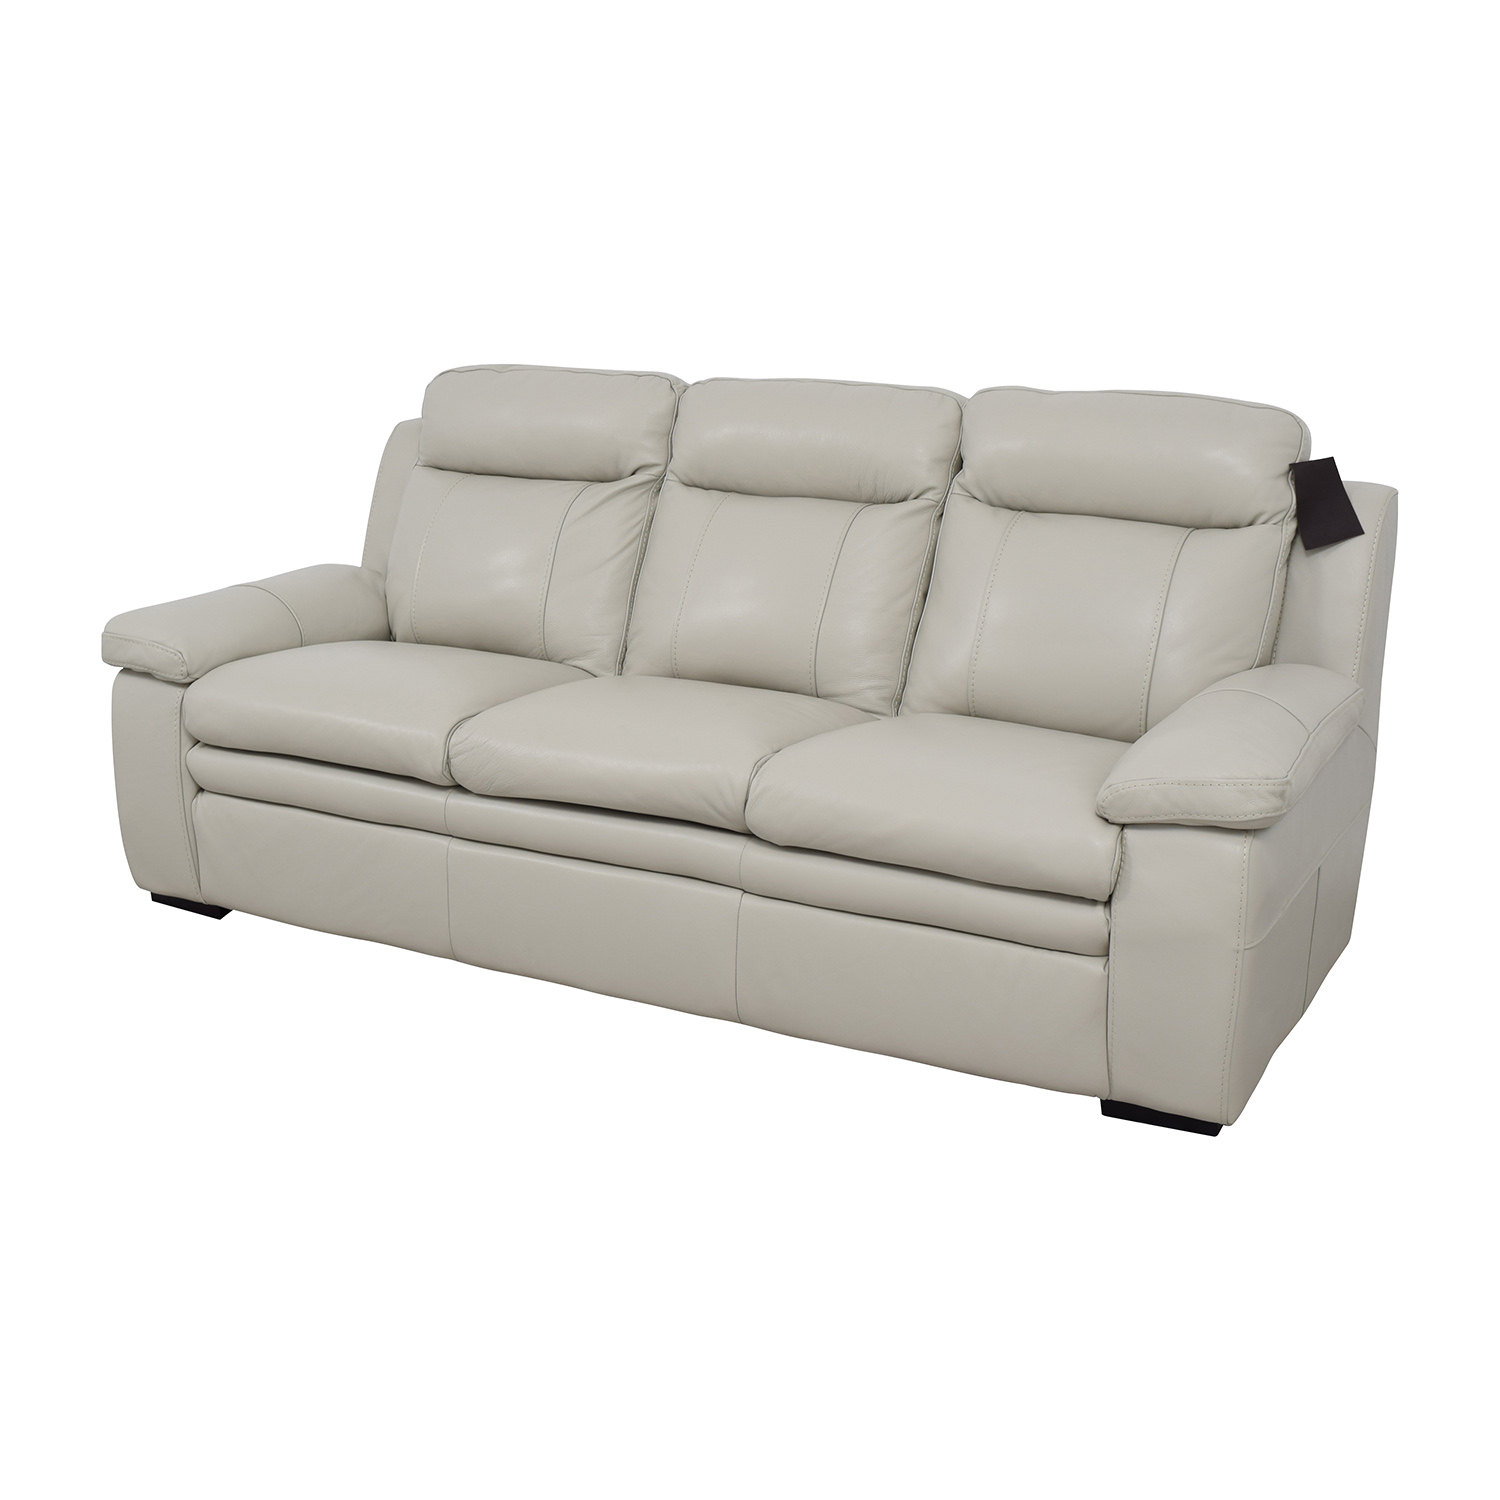 Macy's Macy's Zane White Leather Sofa / Sofas